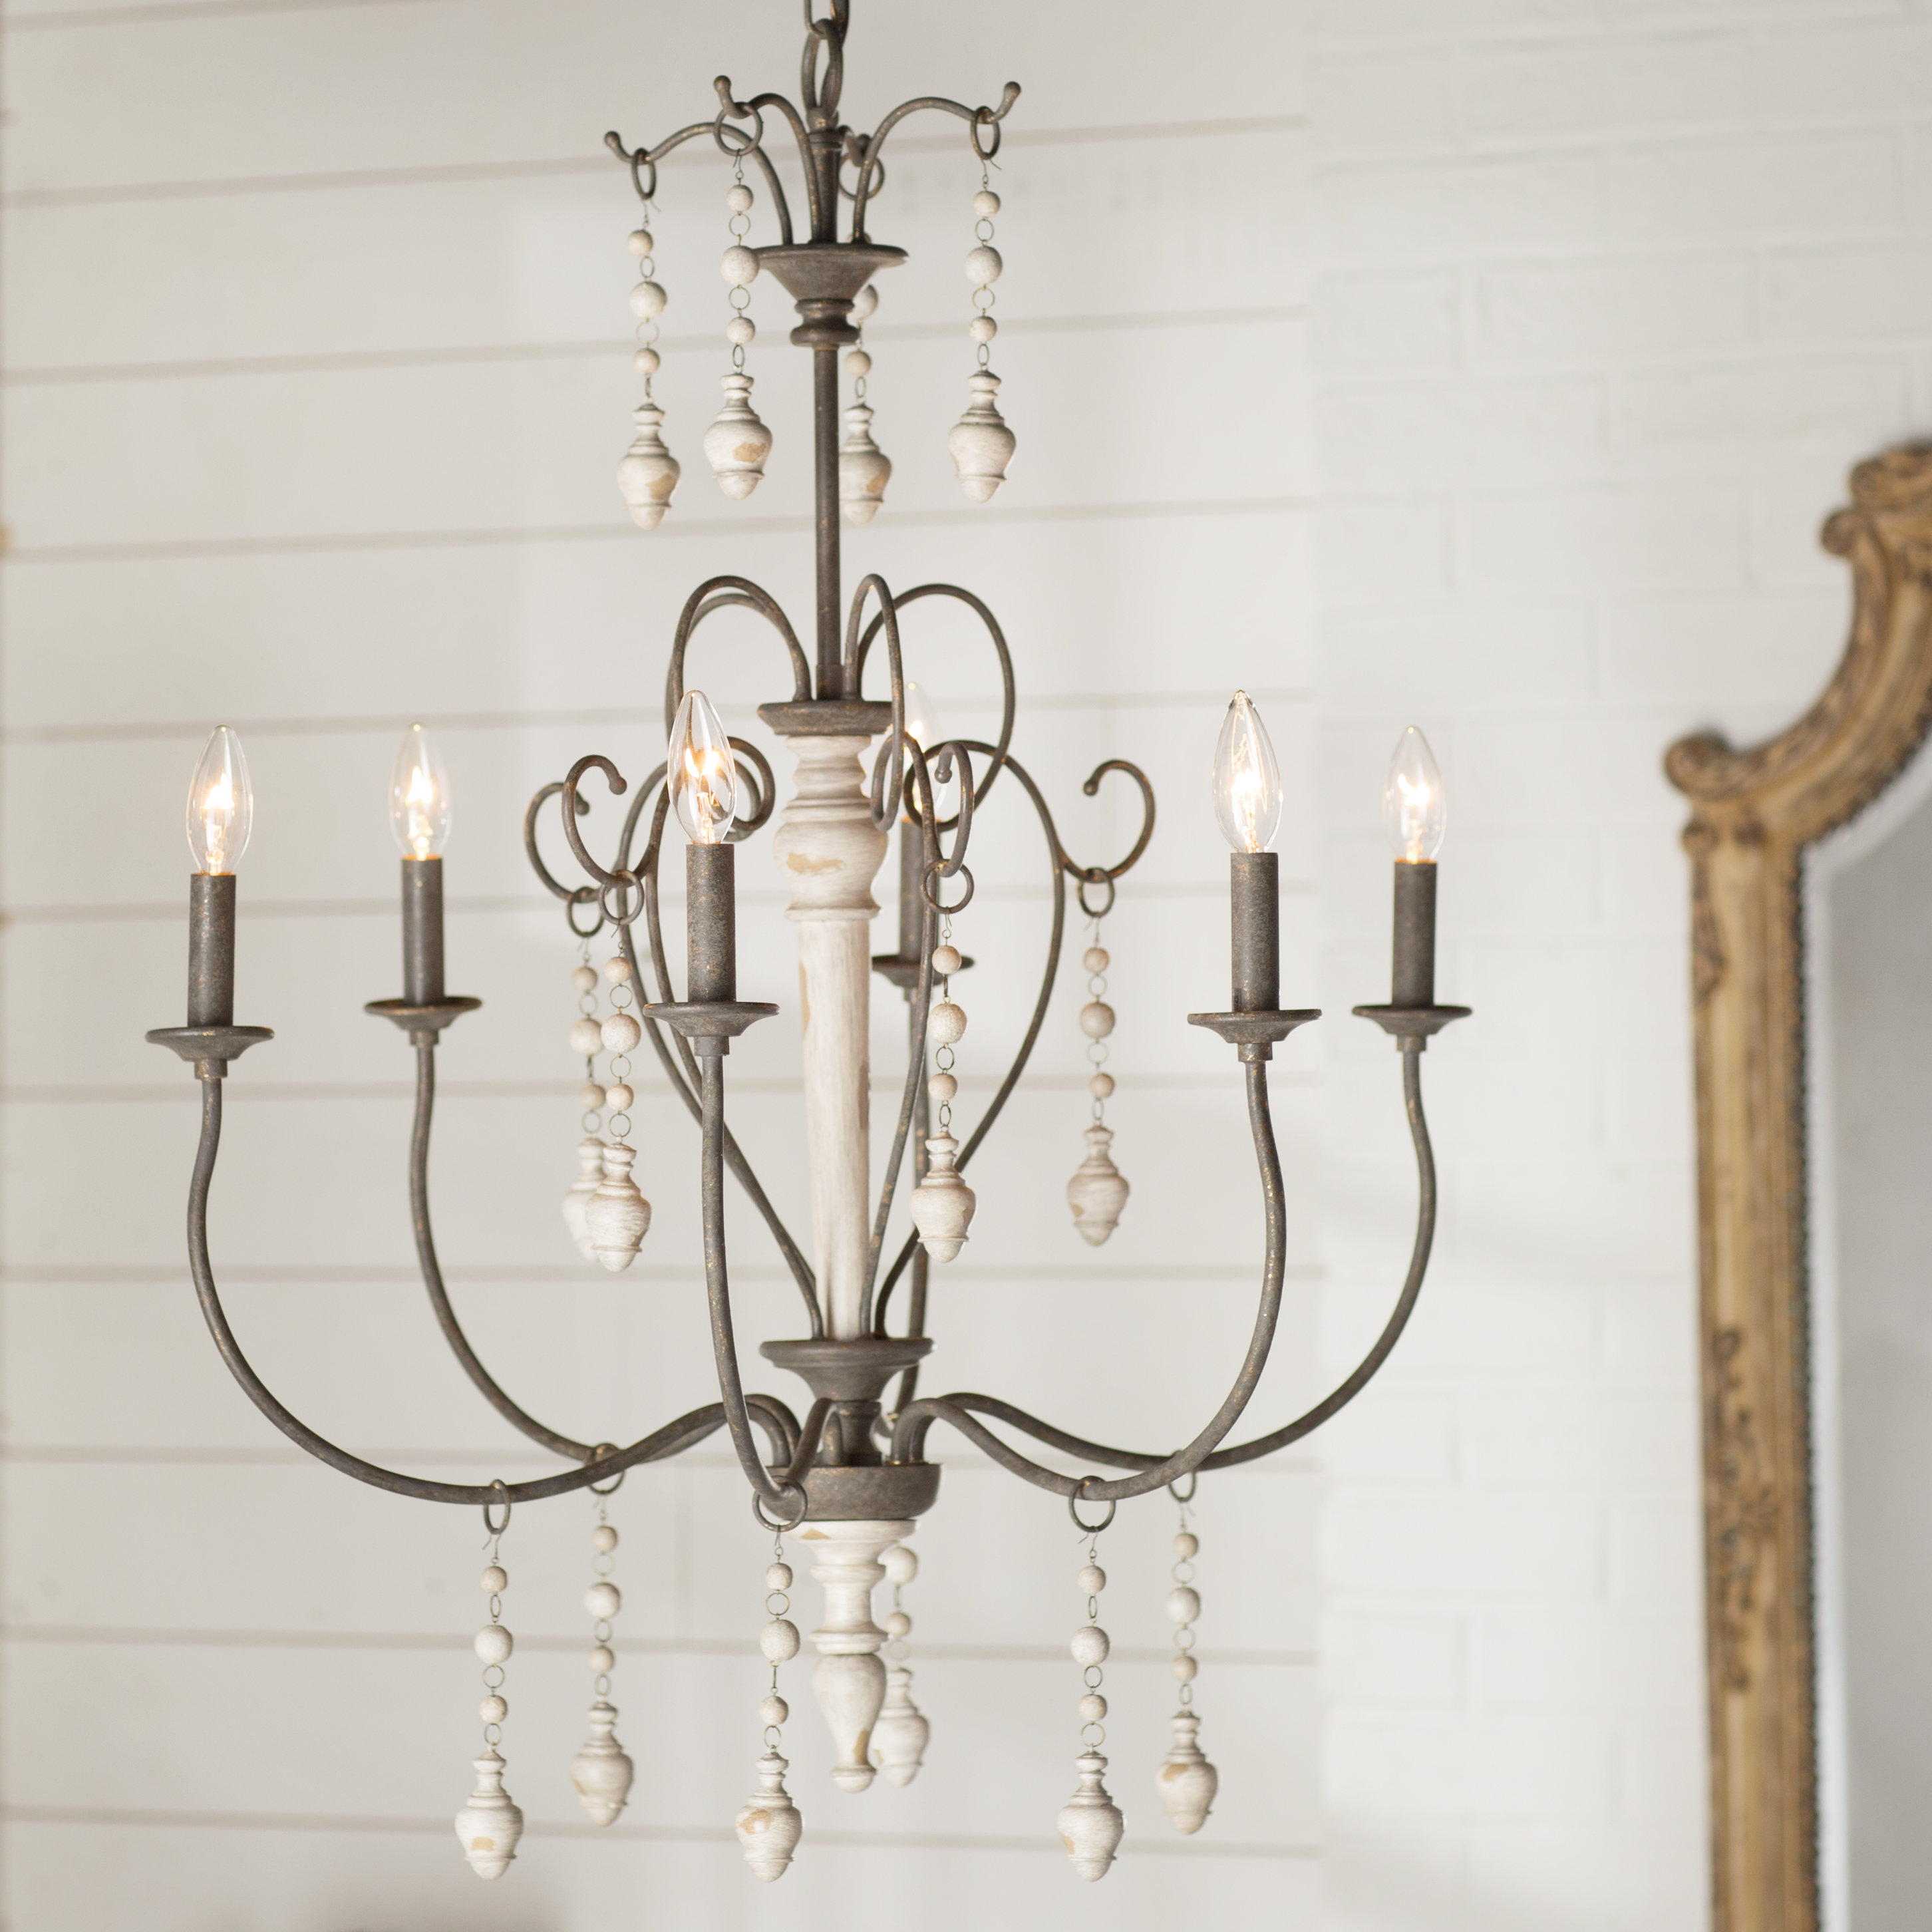 Trendy Shaylee 6 Light Candle Style Chandeliers Throughout Bouchette Traditional 6 Light Candle Style Chandelier (View 20 of 20)